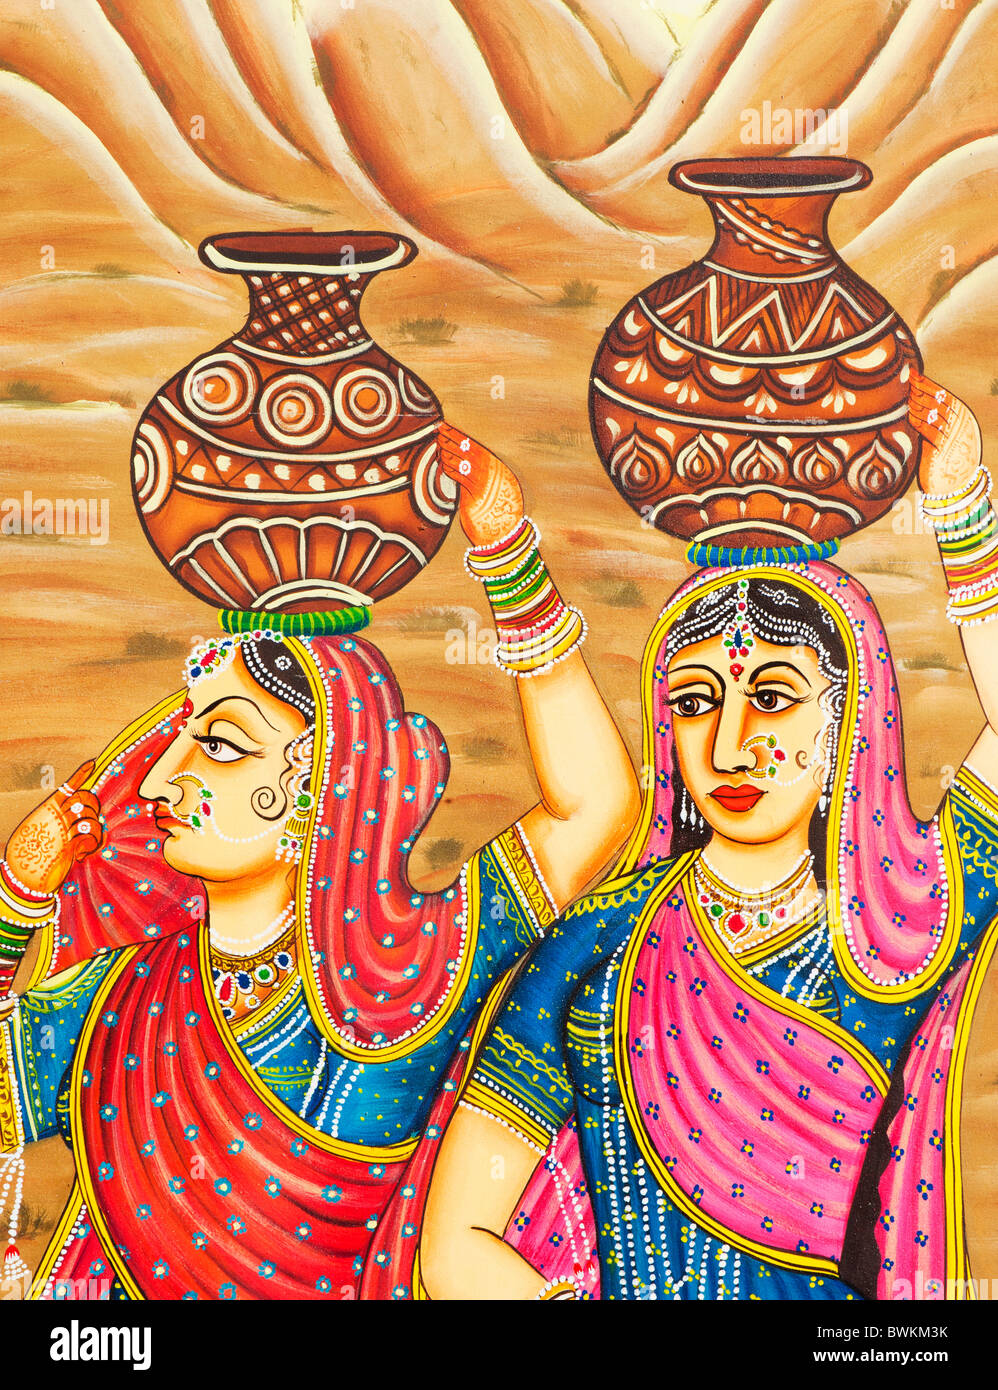 Traditional Indian painting of an Indian woman Gopi carrying a pot - Stock Image